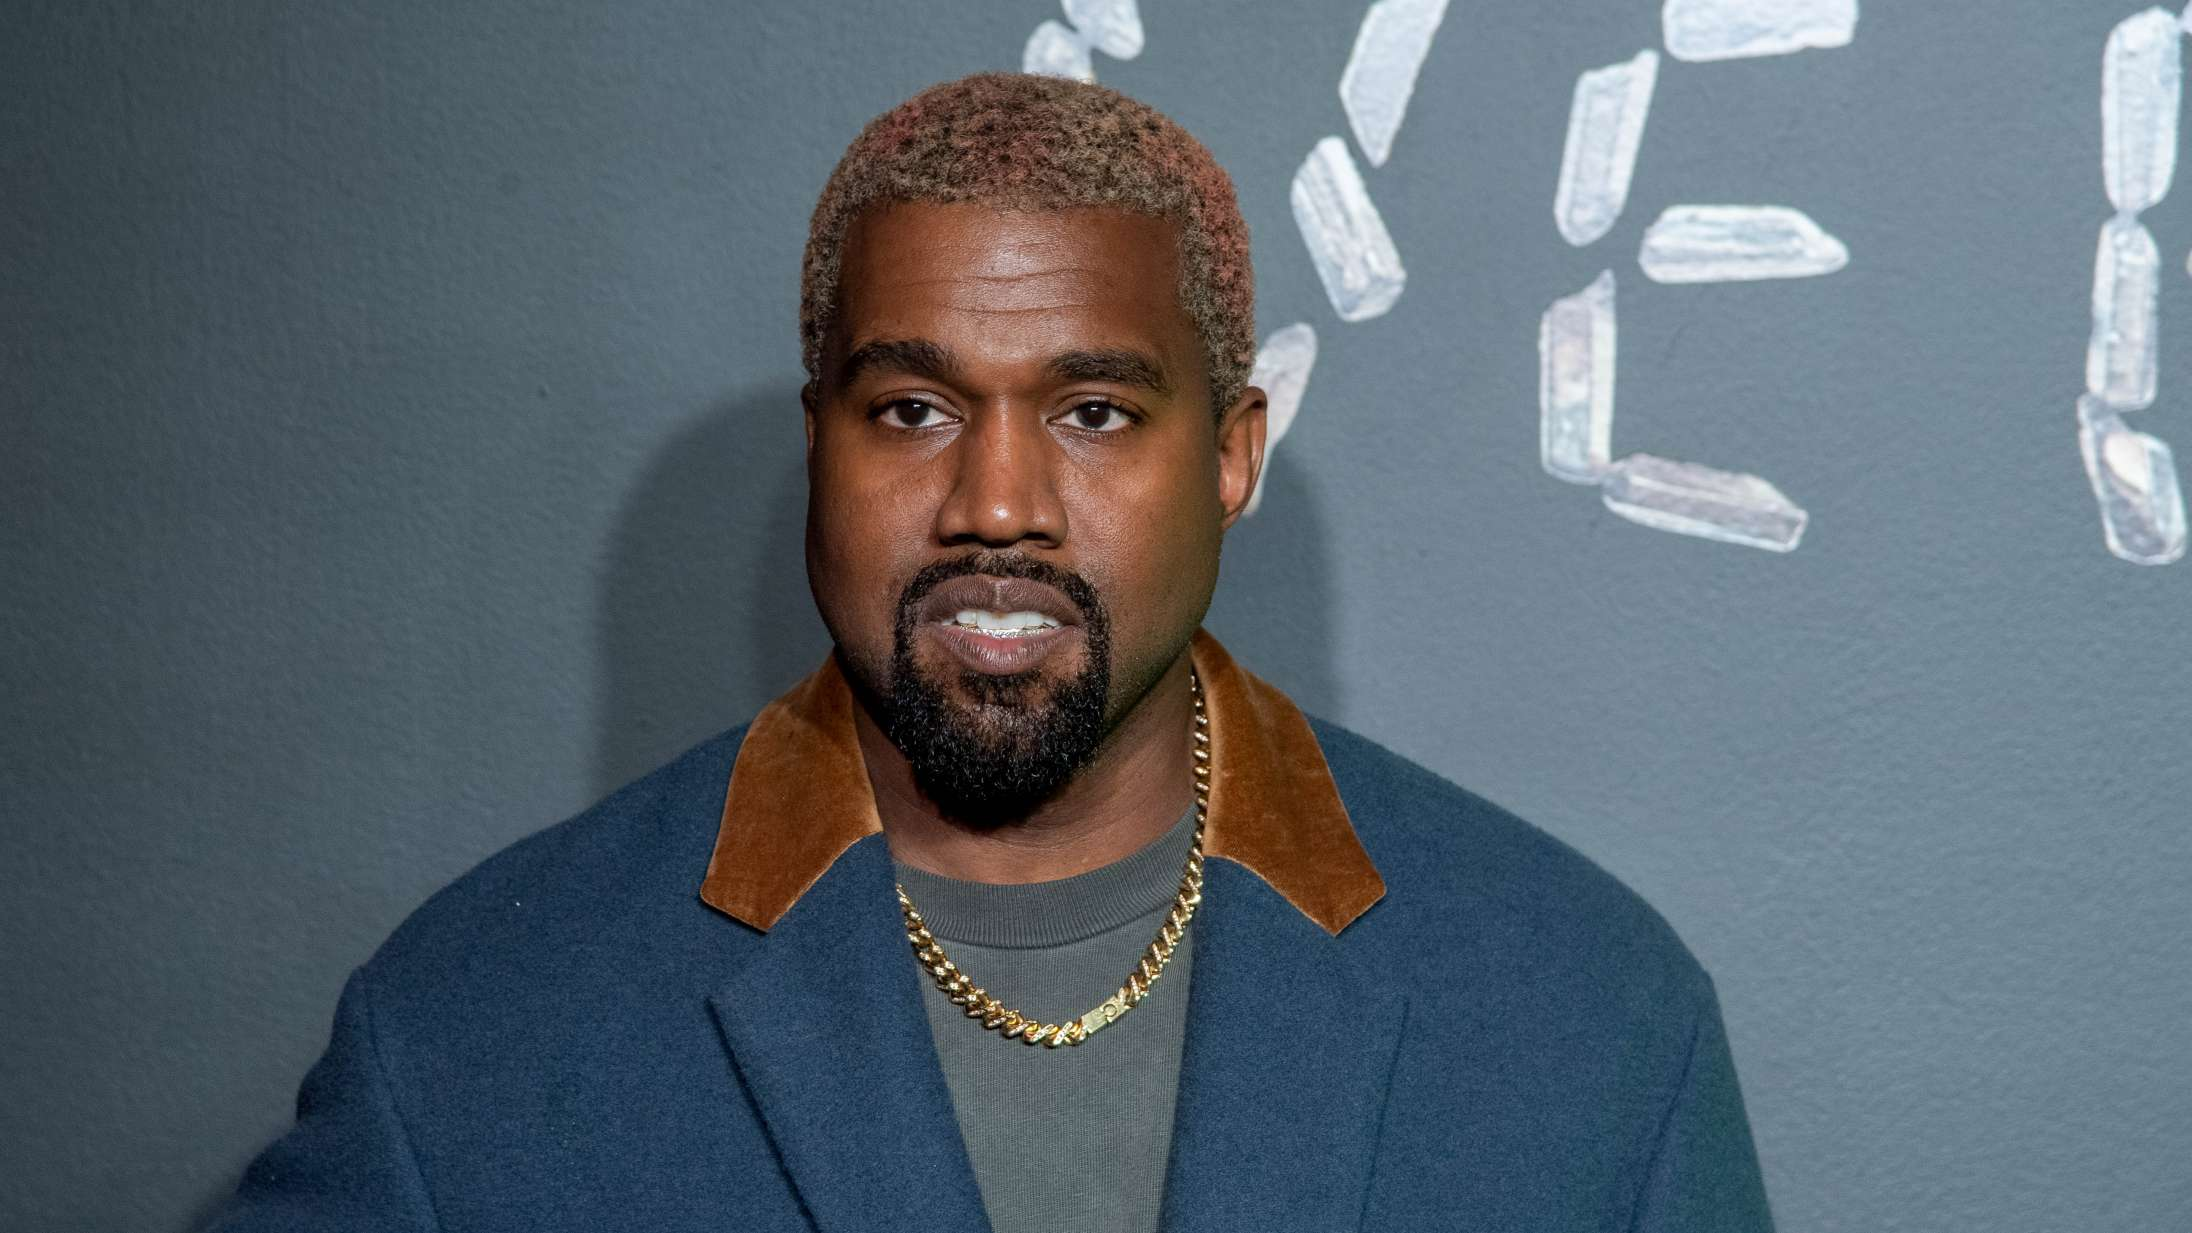 'Rick and Morty'-skabere vil lave episode med Kanye West